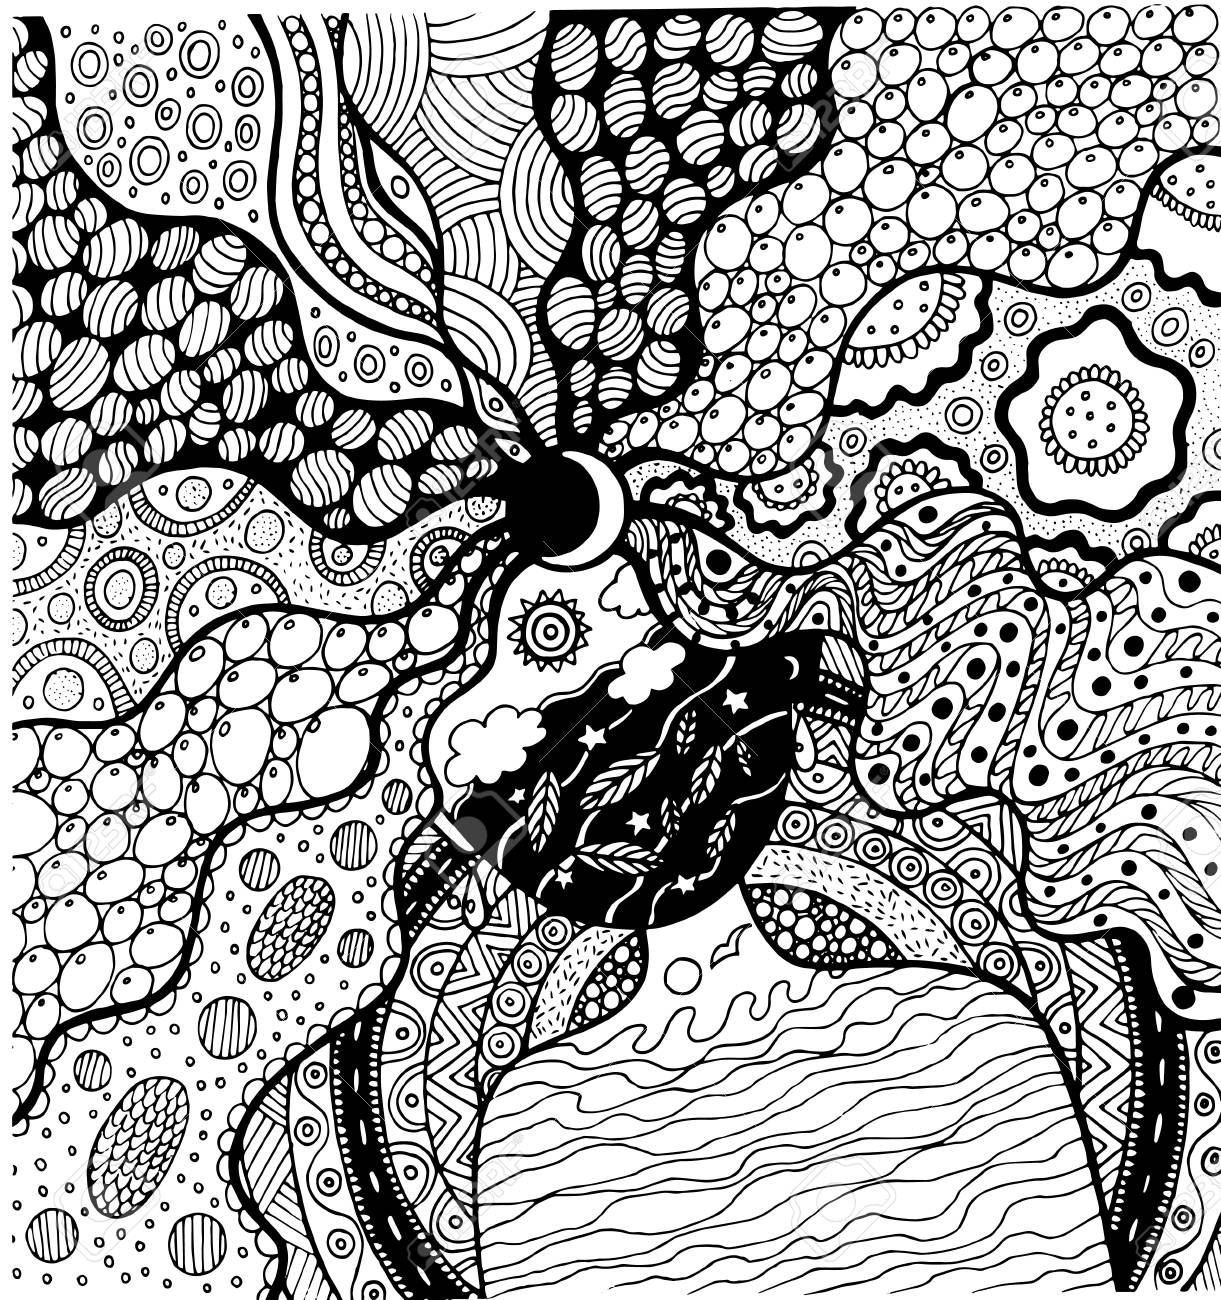 Coloring Page With Surreal Girl For International Mother Earth Day 22 April Hand Drawn Illustration